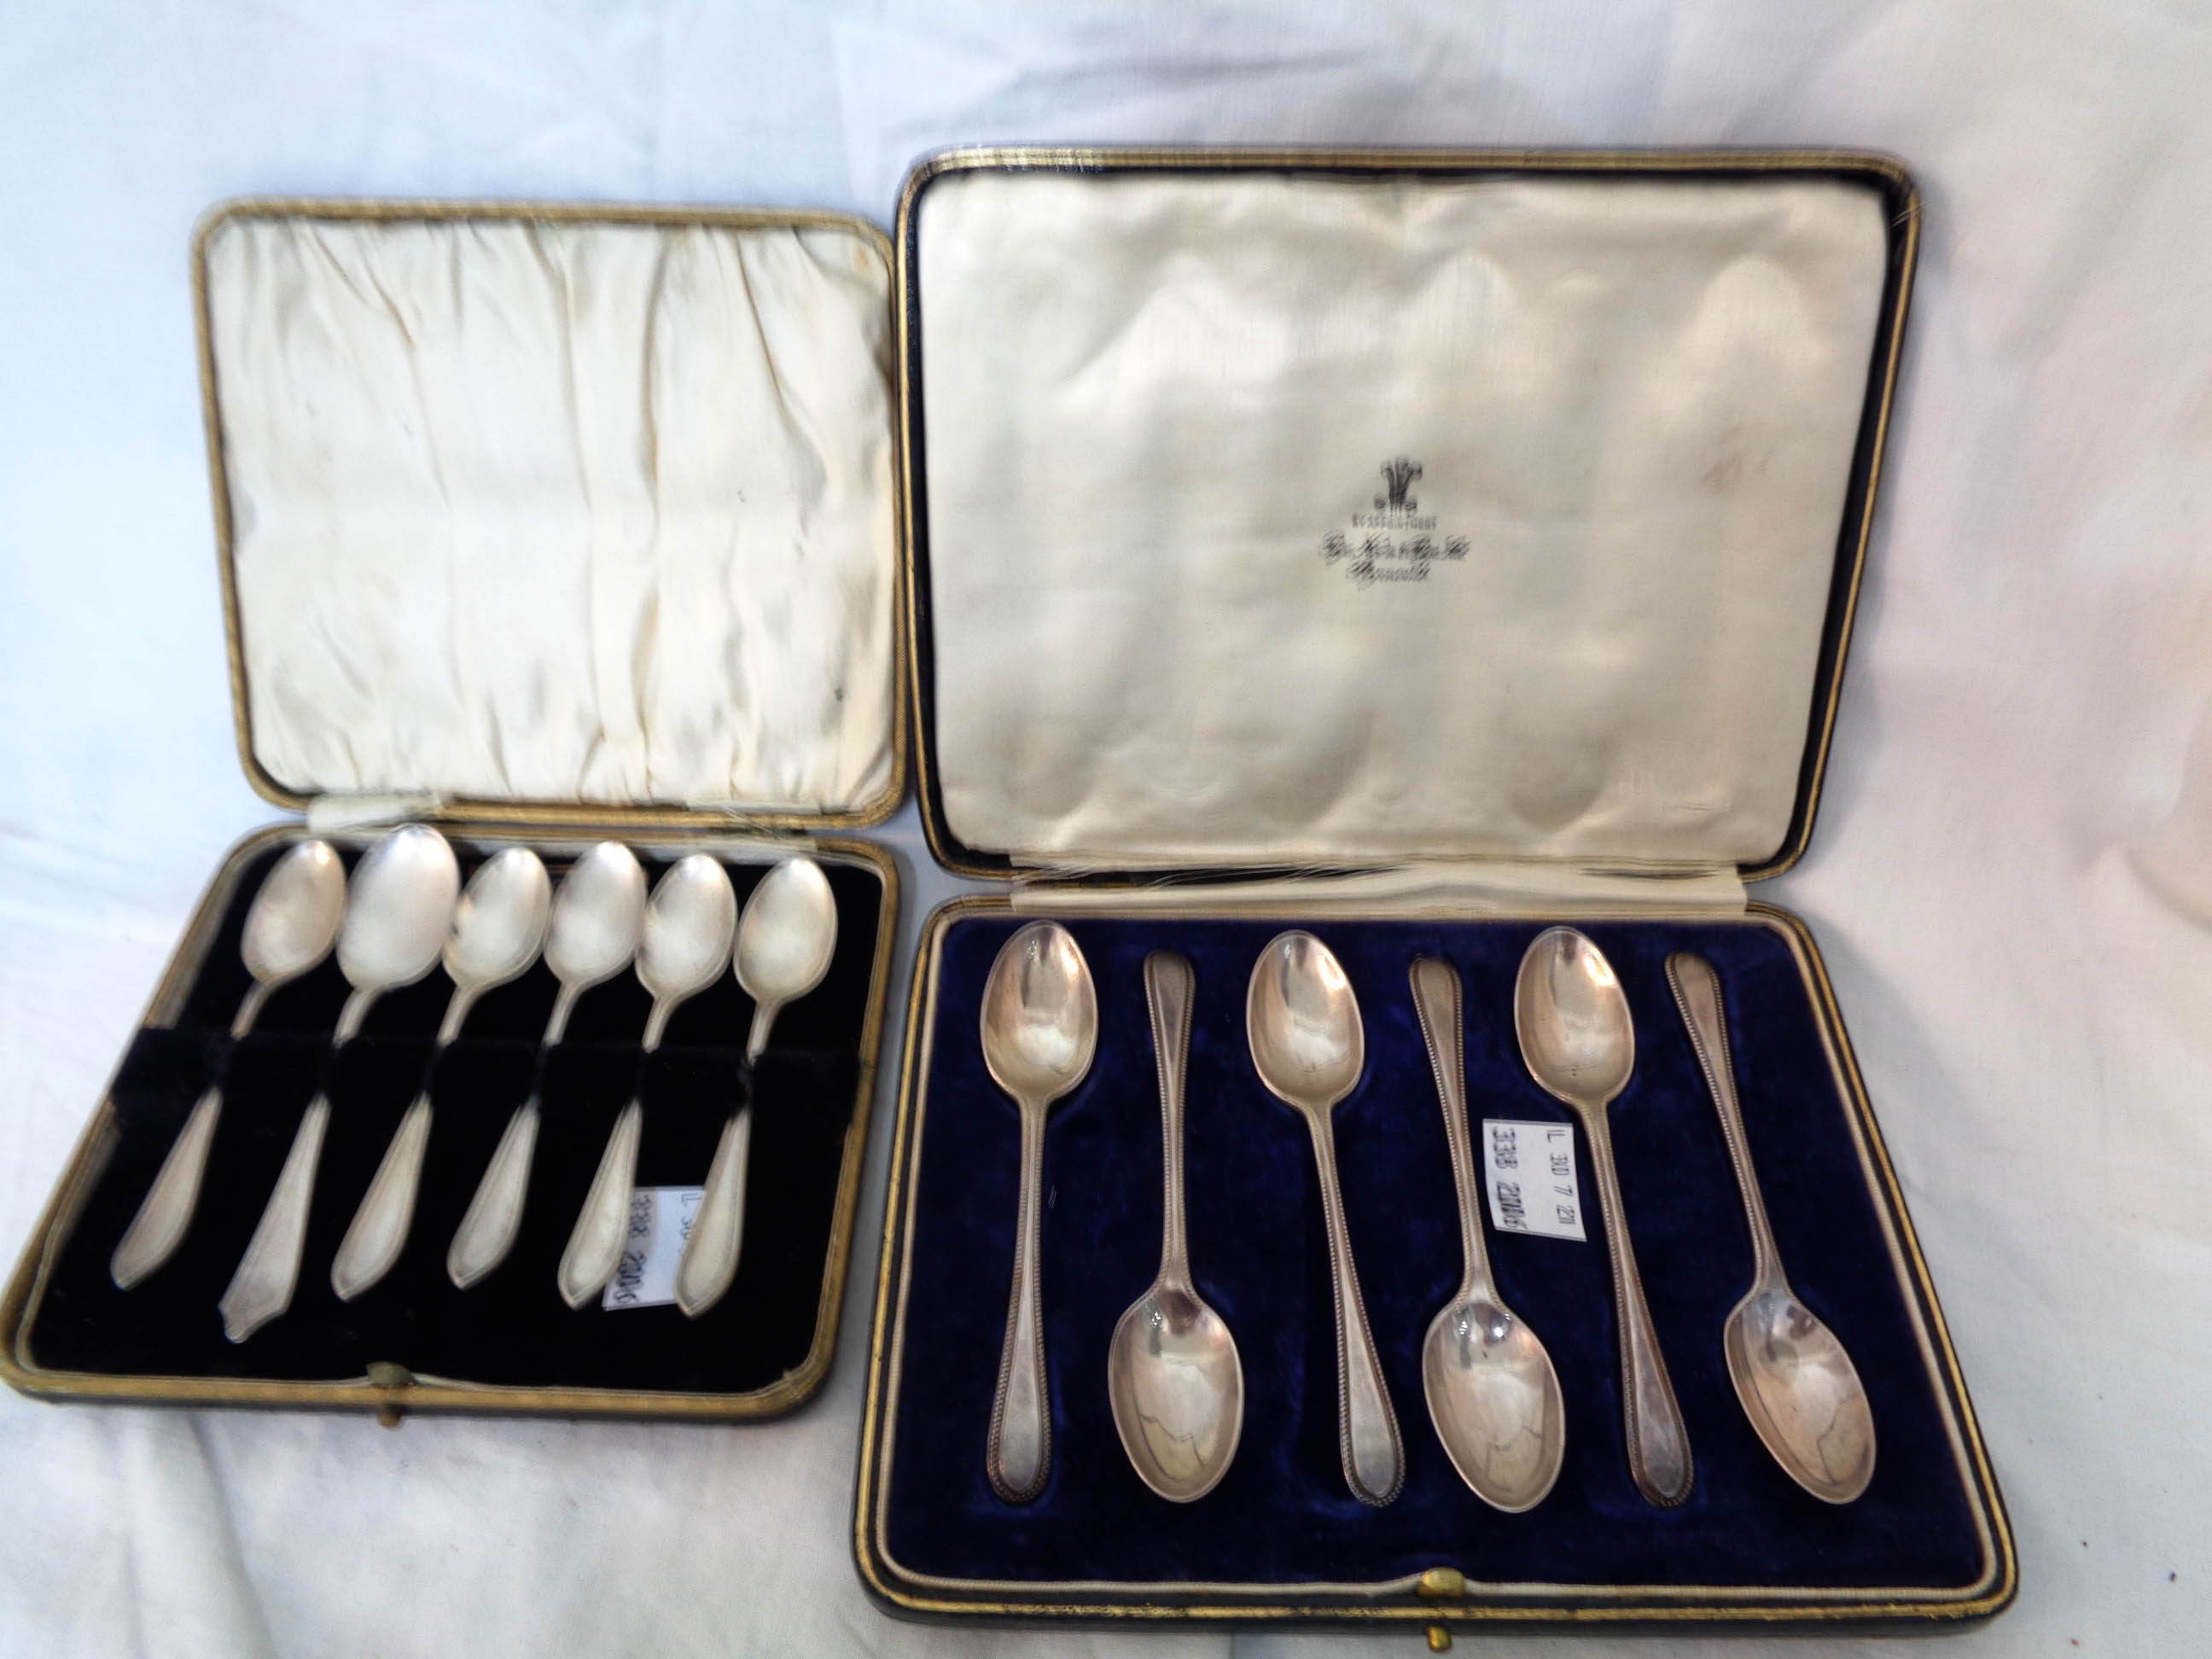 A cased set of six silver teaspoons - sold with a cased set of six silver coffee spoons